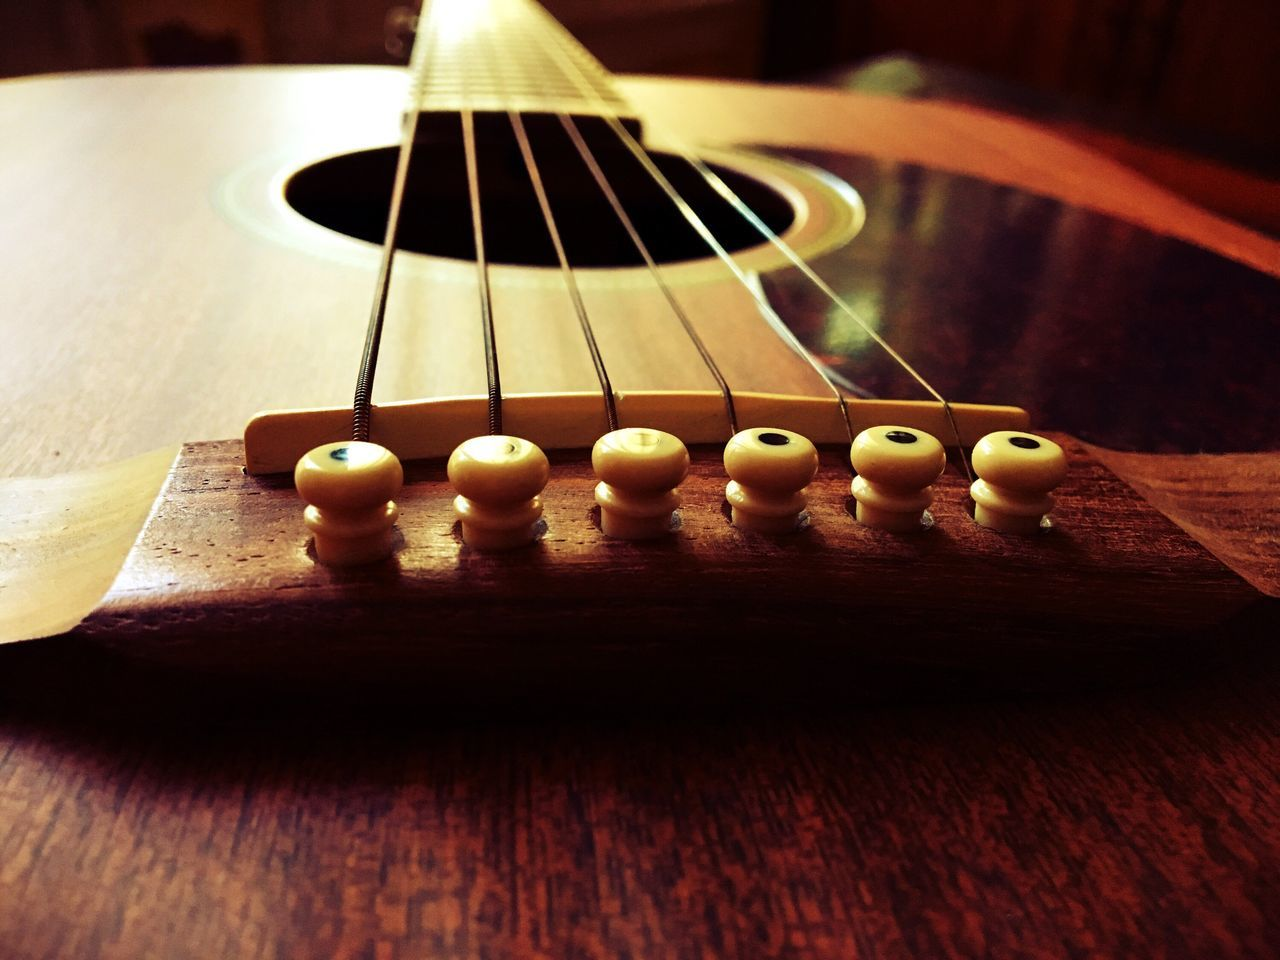 indoors, still life, table, no people, wood - material, music, guitar, close-up, musical instrument string, day